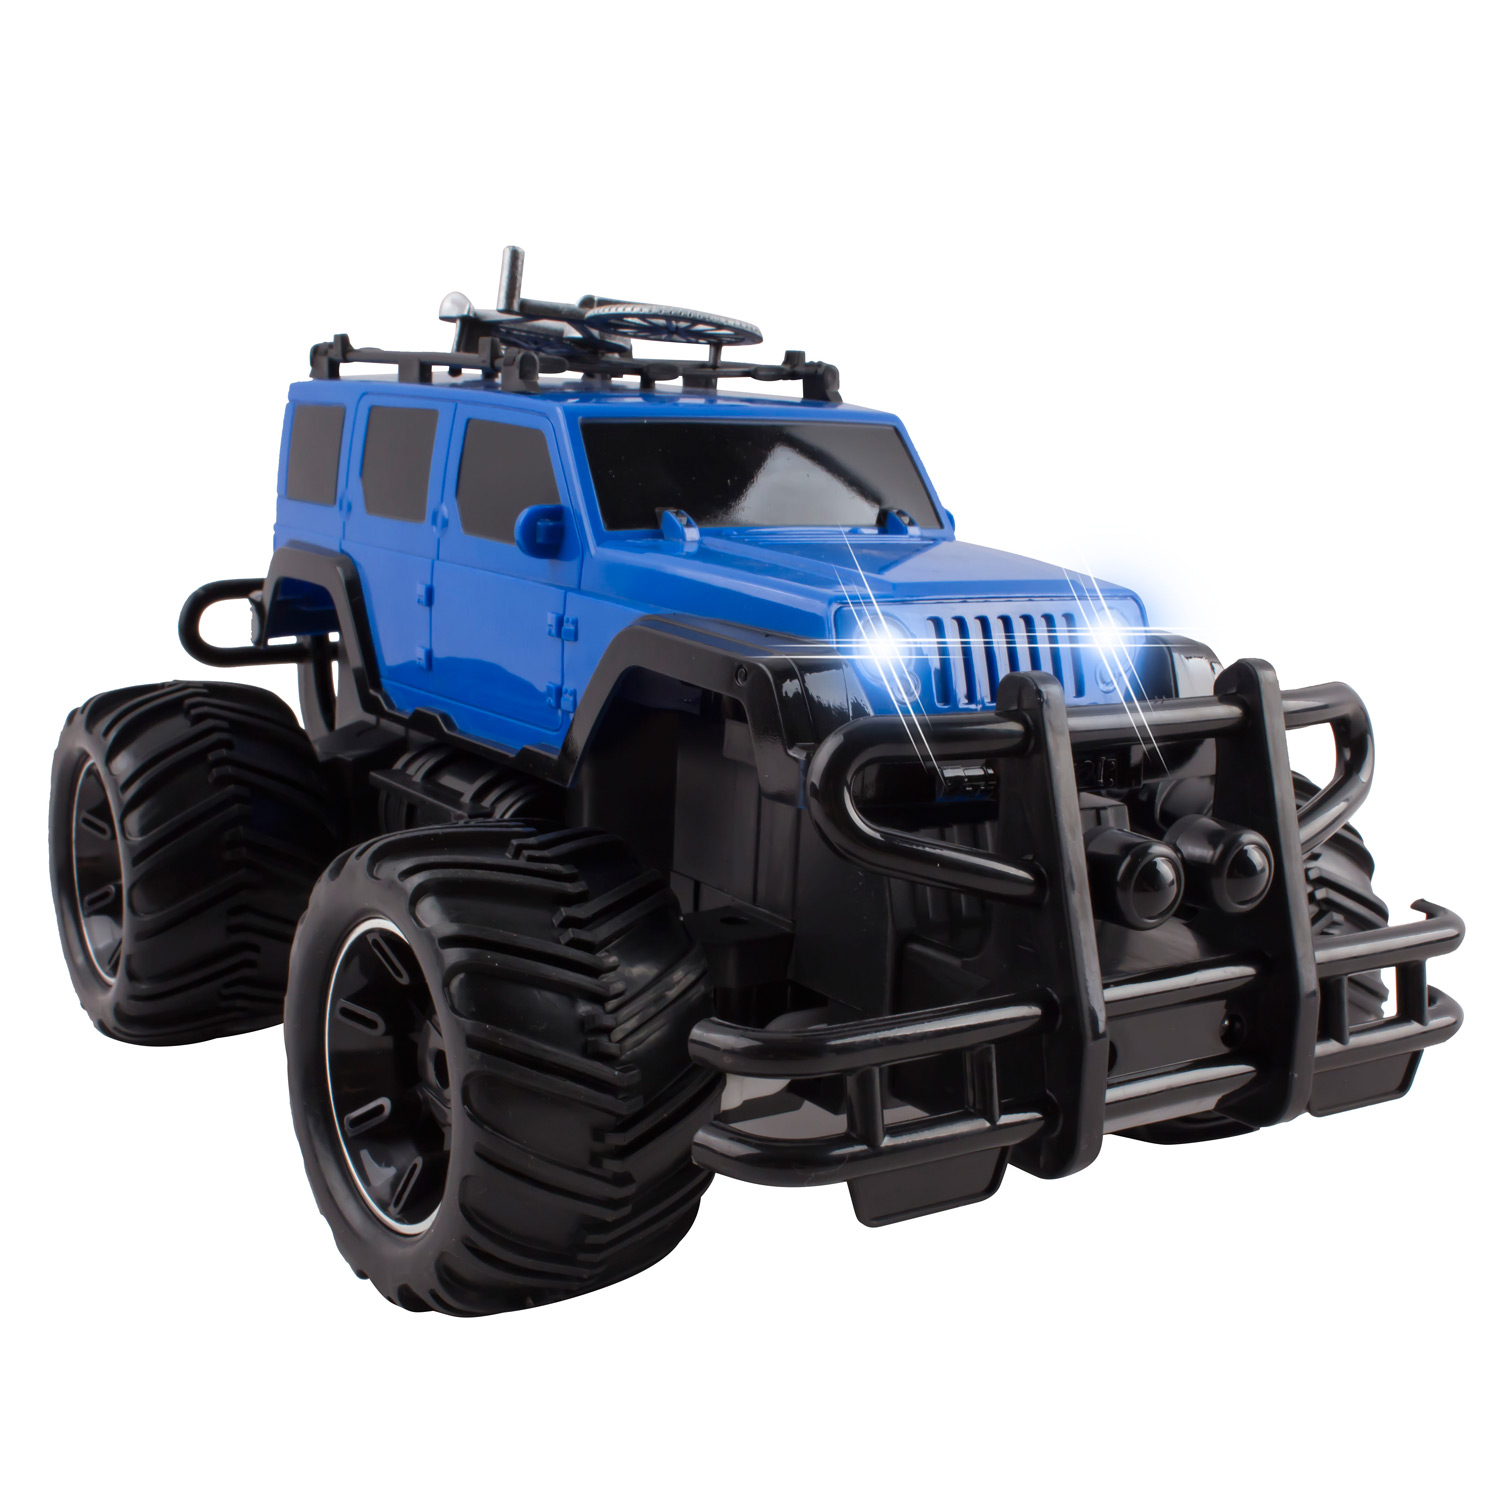 RC Truck Jeep Big Wheel Monster Remote Control Car With LED Headlights Ready to Run Includes Rechargeable Battery 1:16 Size Off-Road Beast Buggy Toy Blue